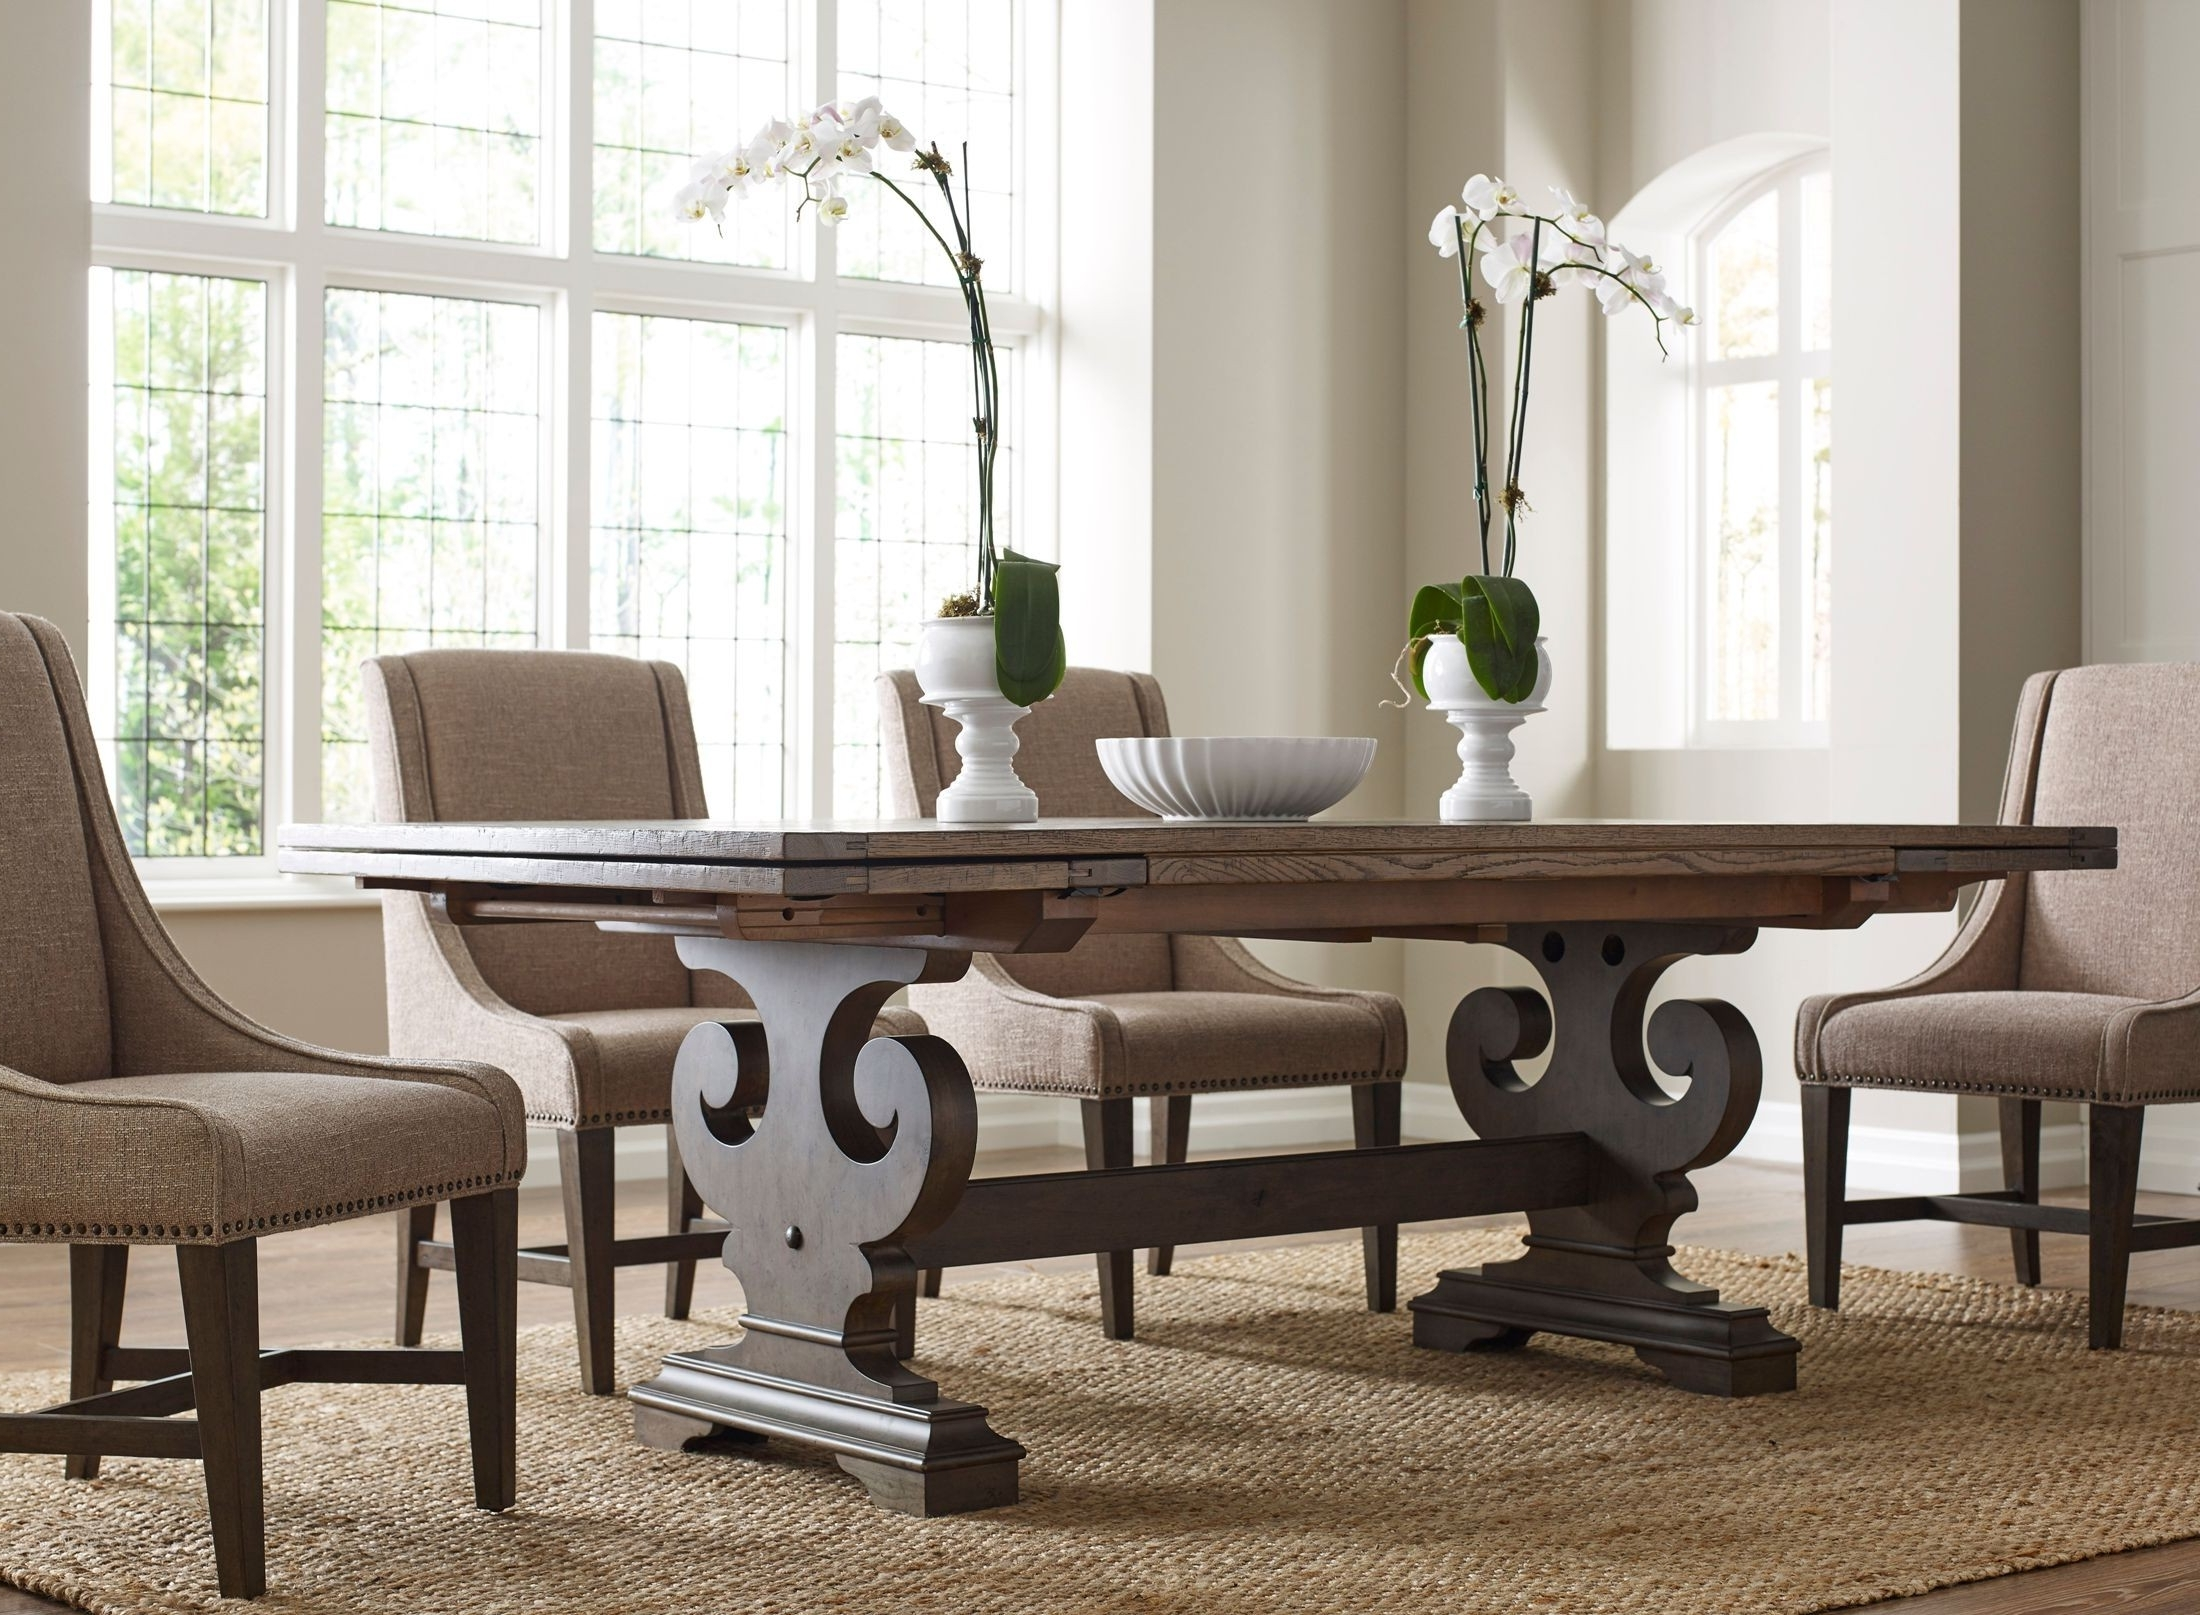 Most Recently Released Crawford Rectangle Dining Tables Pertaining To Kincaid Greyson Crawford Refractory Dining Room Set – Greyson (View 13 of 25)